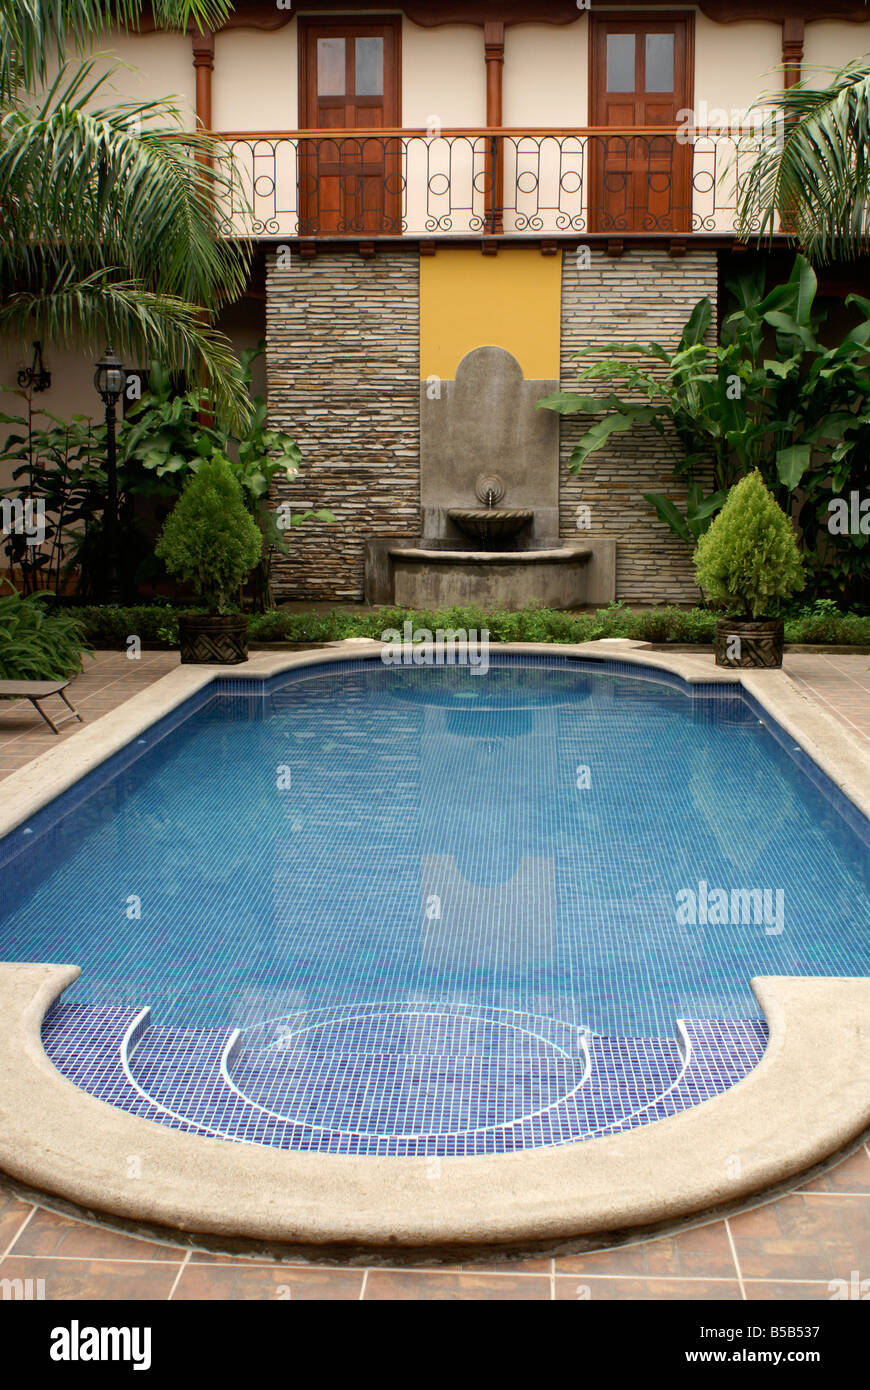 Swimming Pool In The Hotel Colonial In The Spanish Colonial City Of Stock Photo Royalty Free